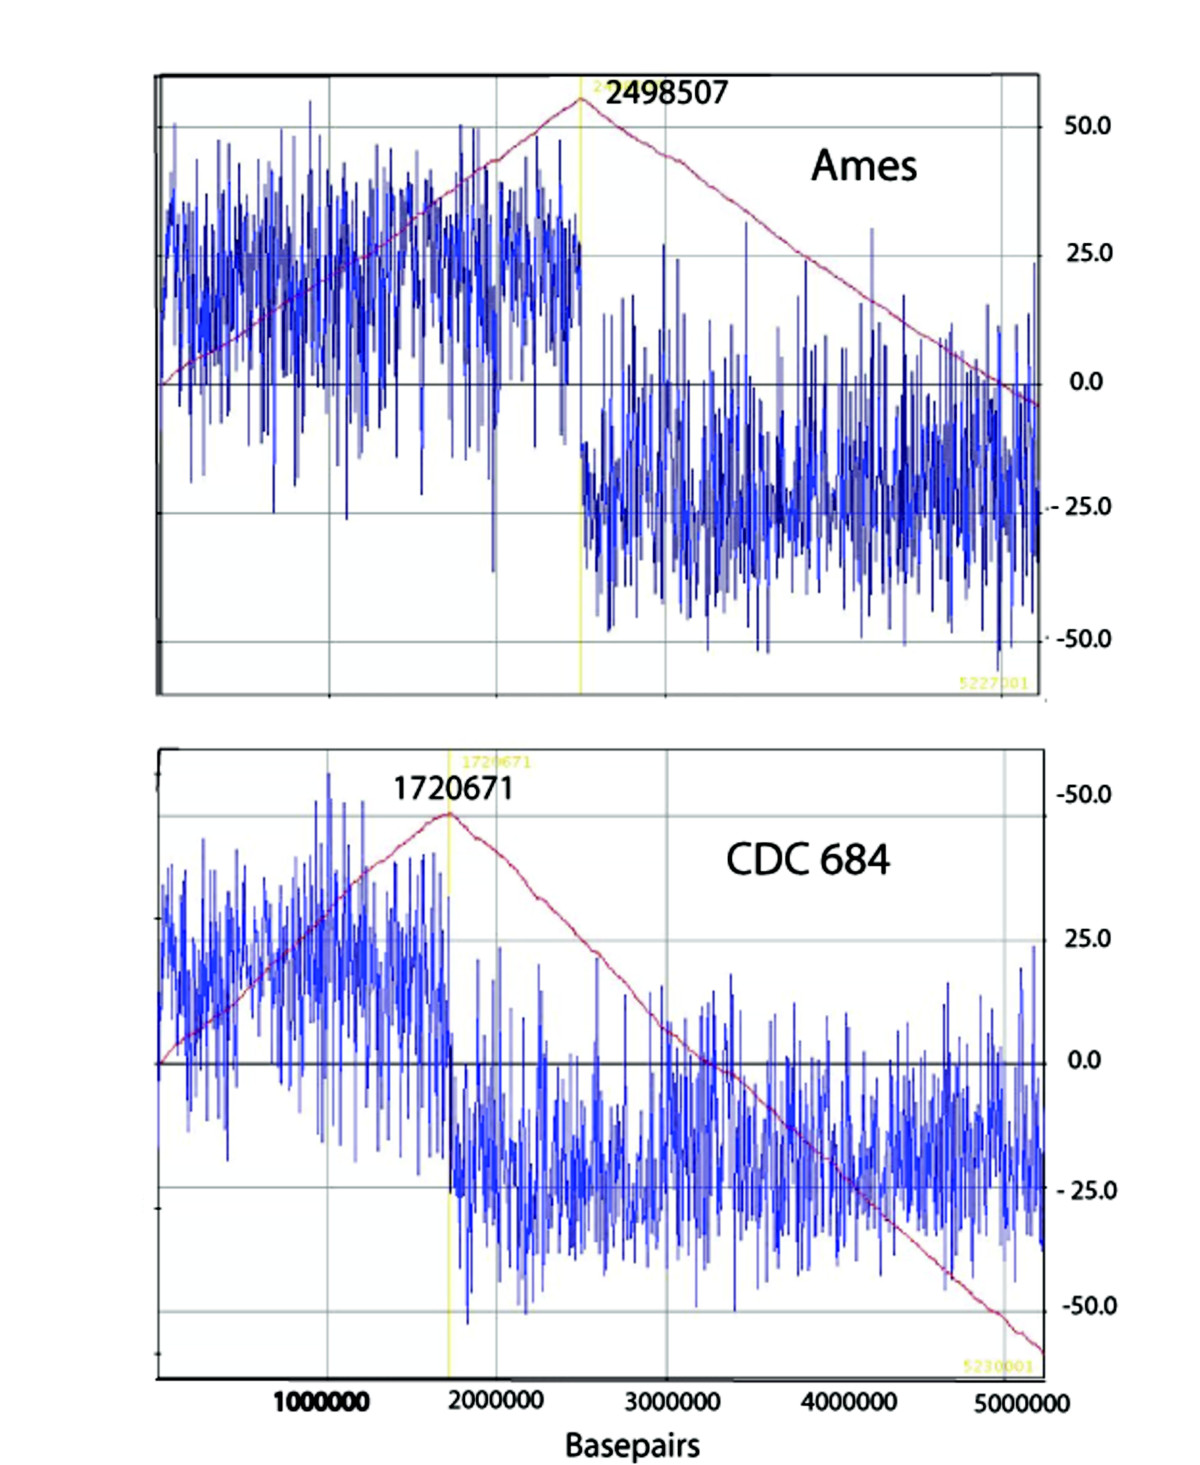 http://static-content.springer.com/image/art%3A10.1186%2F1471-2164-12-477/MediaObjects/12864_2011_3652_Fig4_HTML.jpg